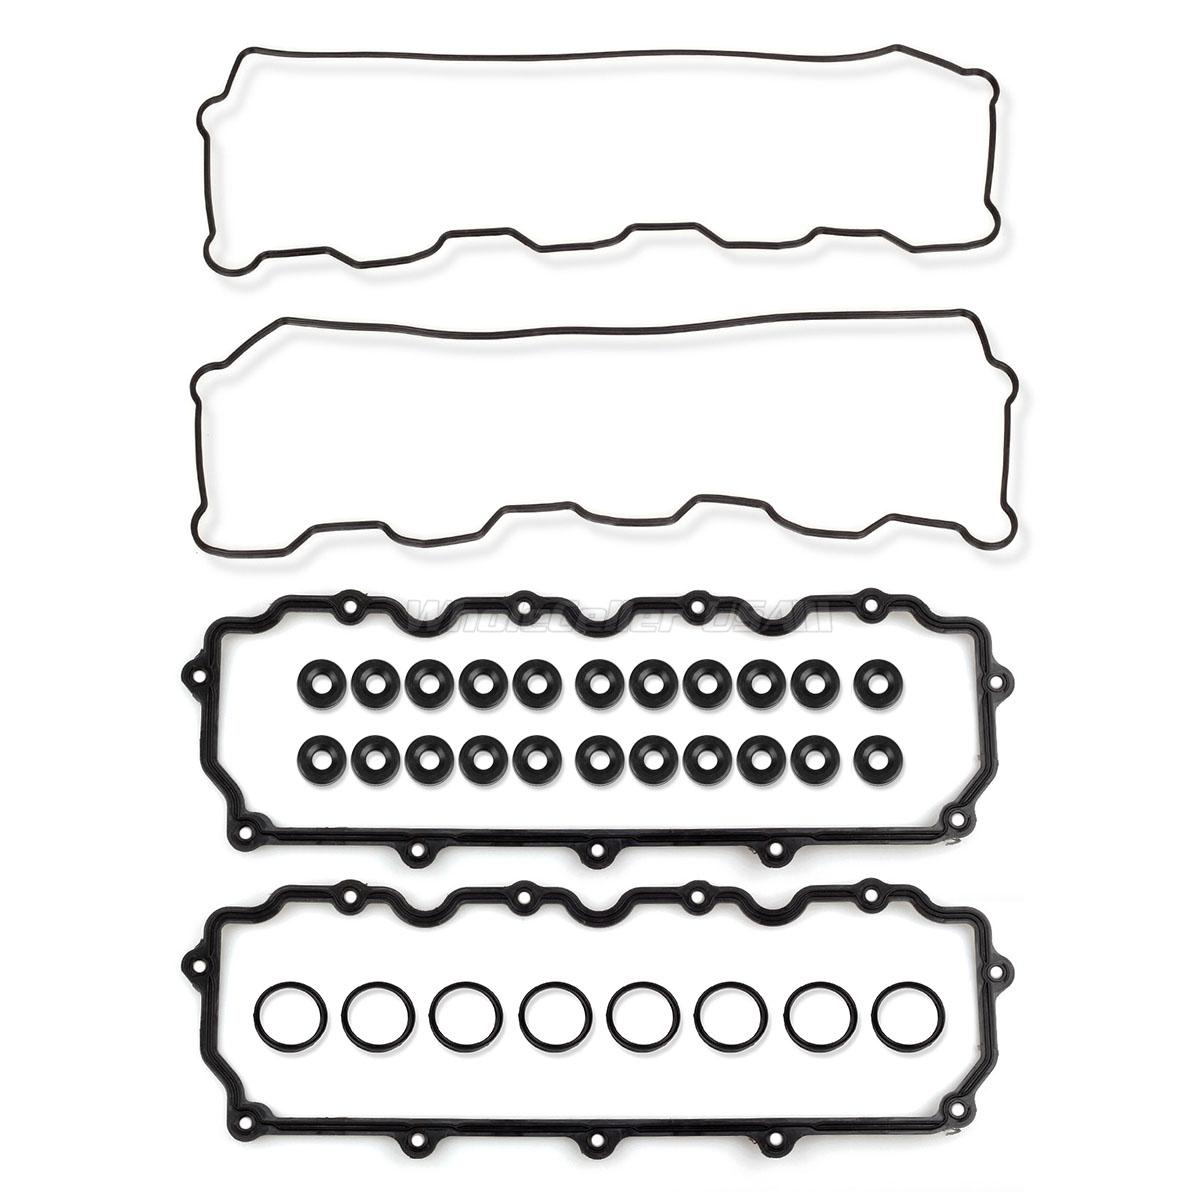 2x Valve Cover Head Gasket For Ford F 250 F 350 03 07 6